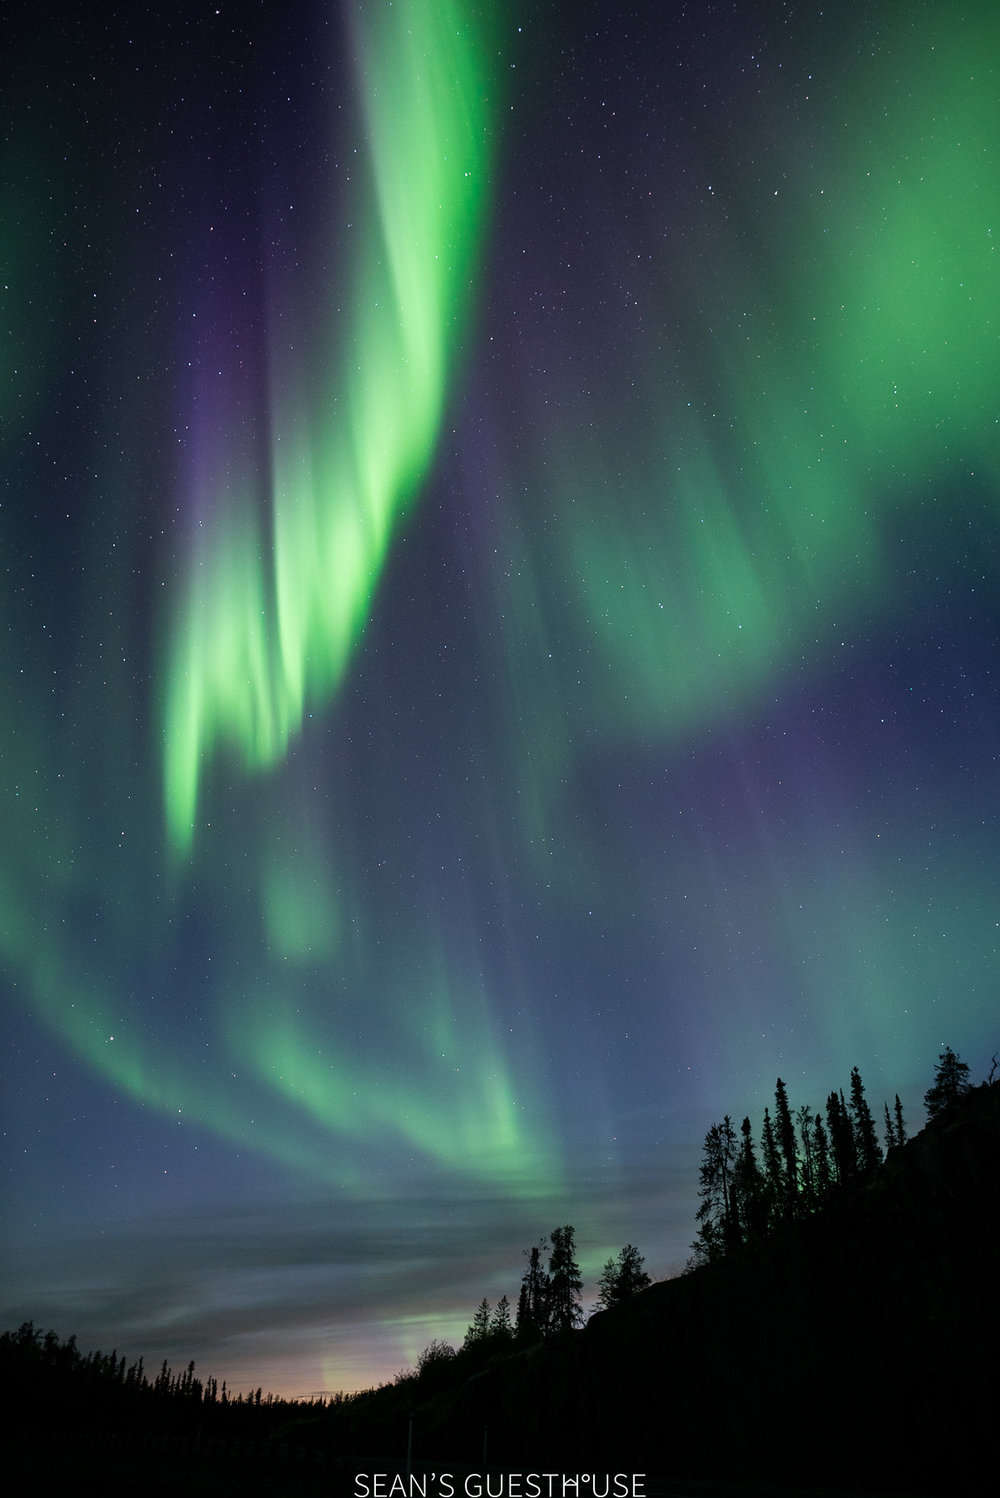 Sean's Guesthouse - The Best Place to See the Northern Lights - 2.jpg